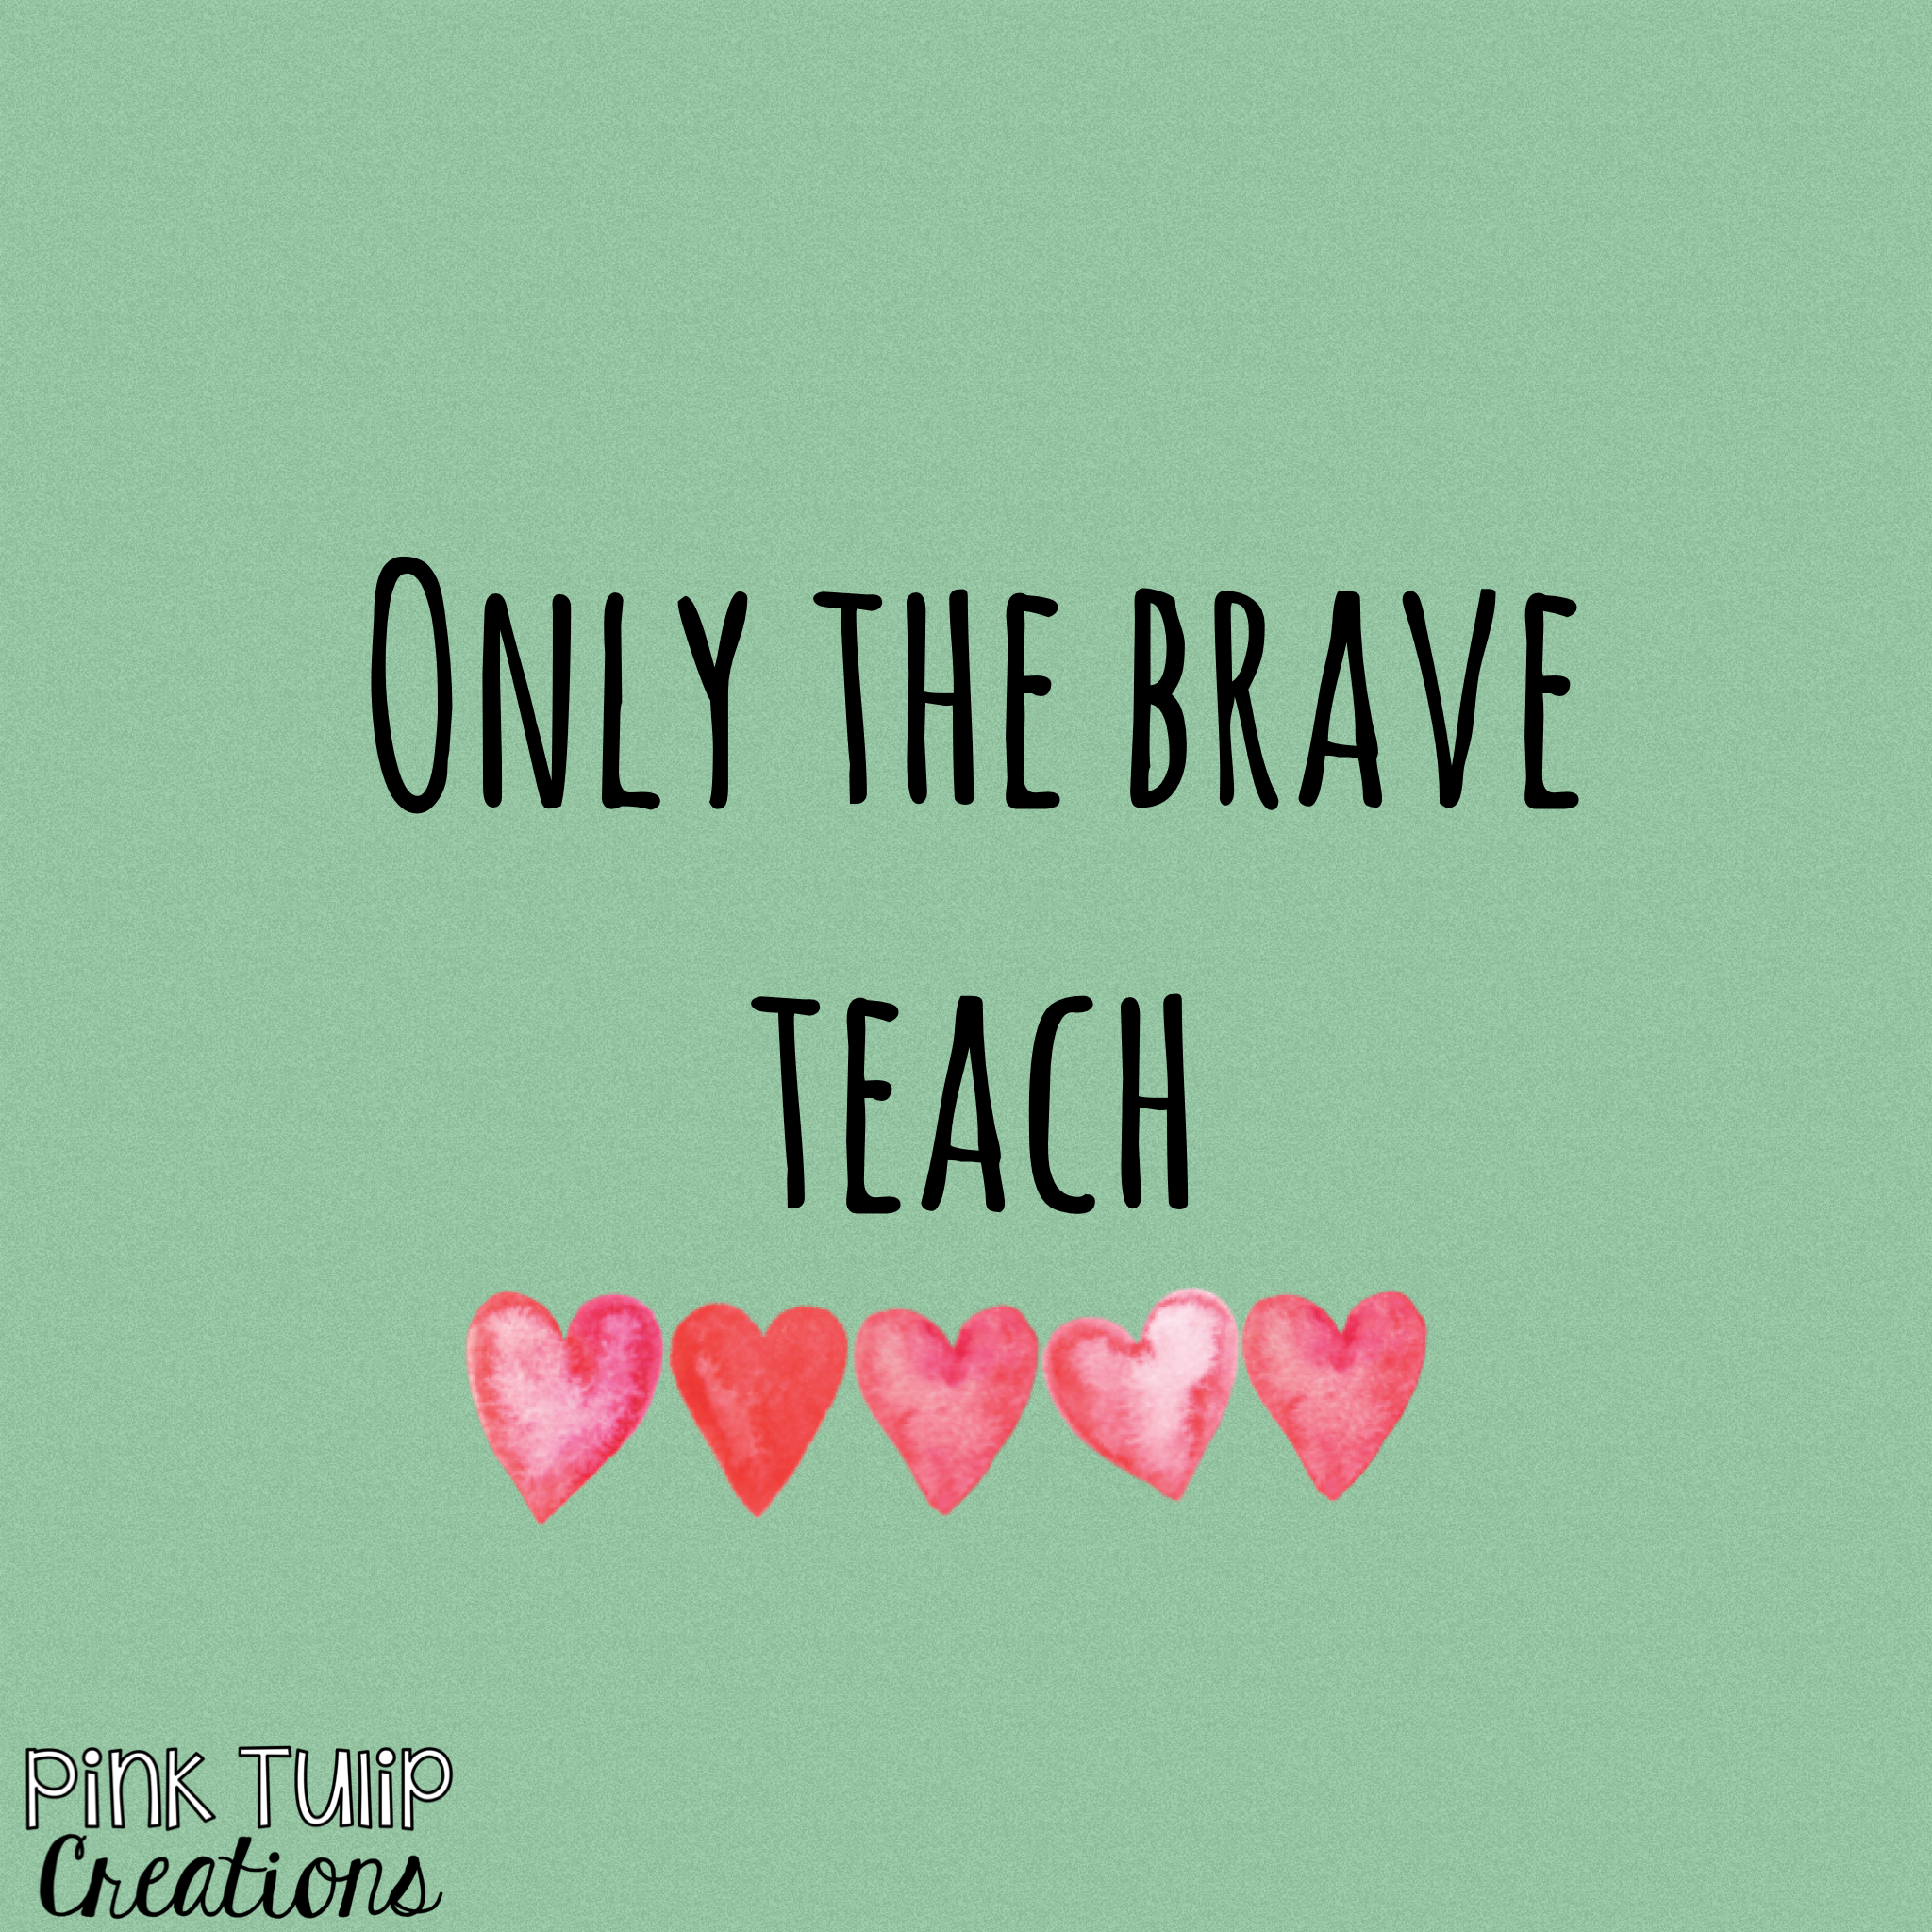 Teaching Quotes Extraordinary Only The Brave Teachteaching Quotes Educational Education . Inspiration Design